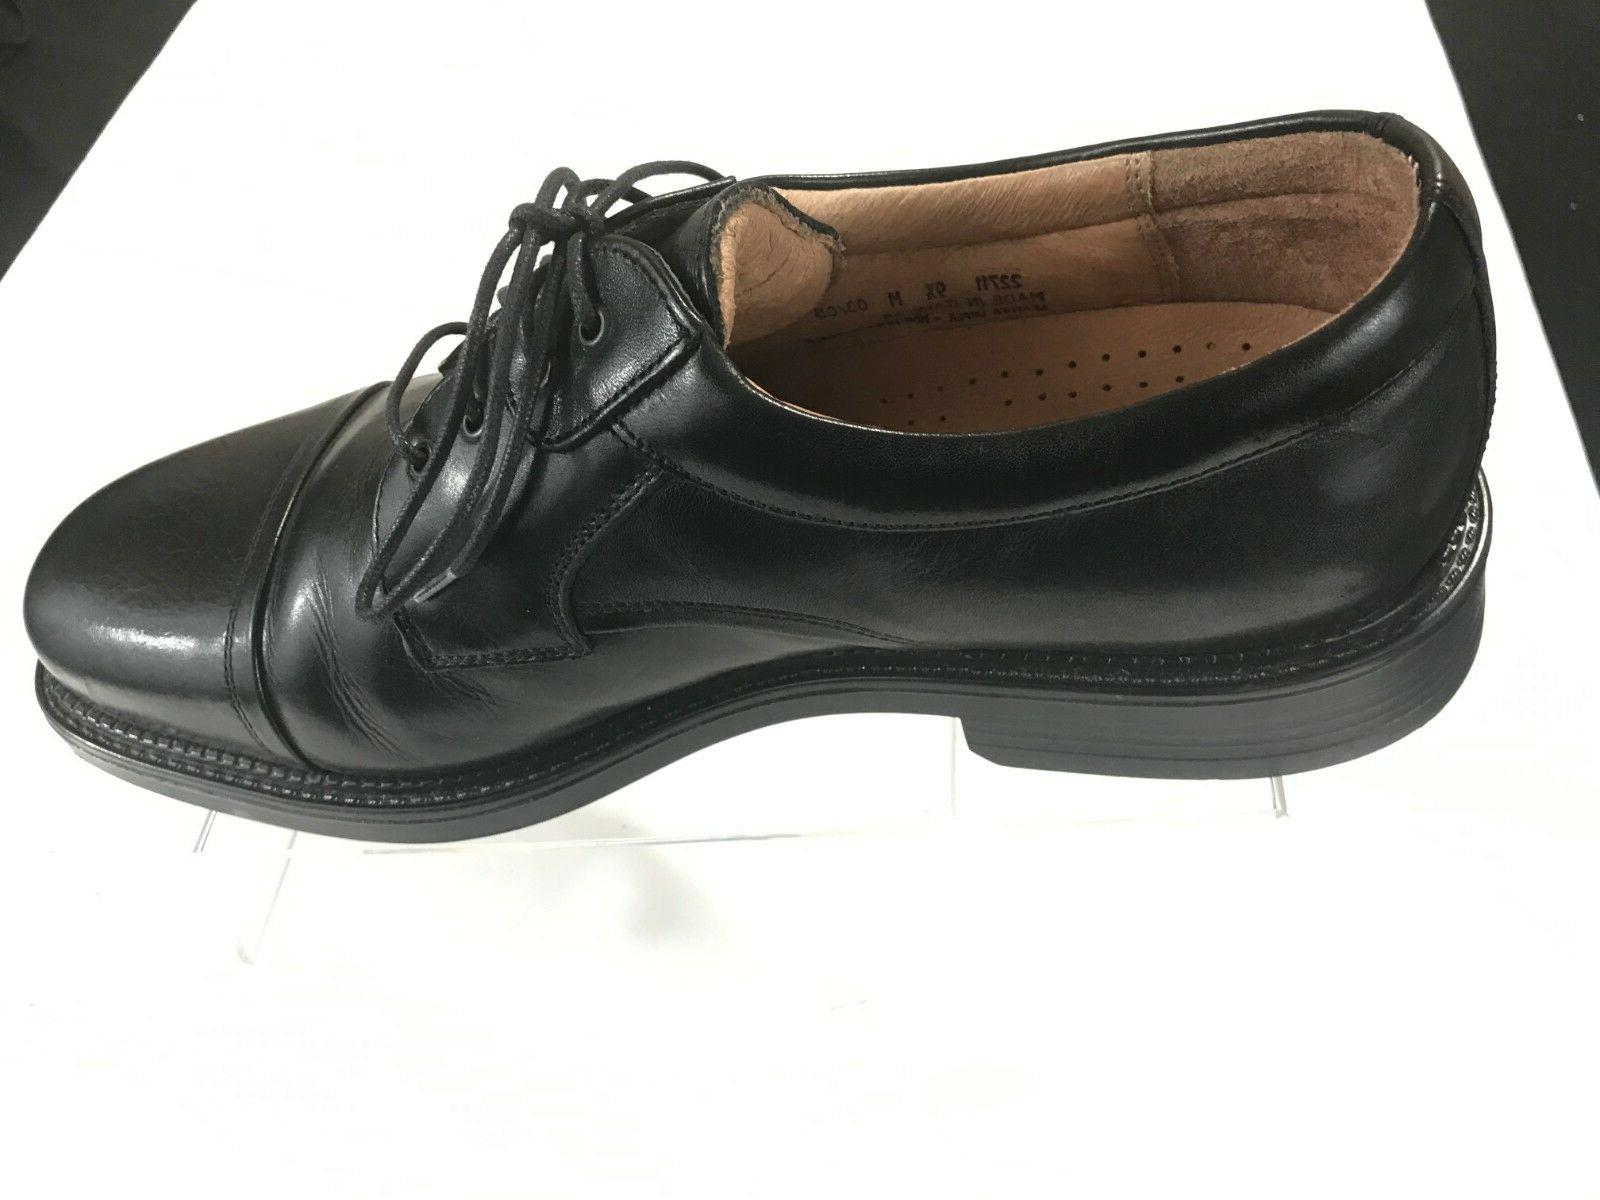 BOSTONIAN Mens Black Cap Oxford Shoes 9.5 M in Italy